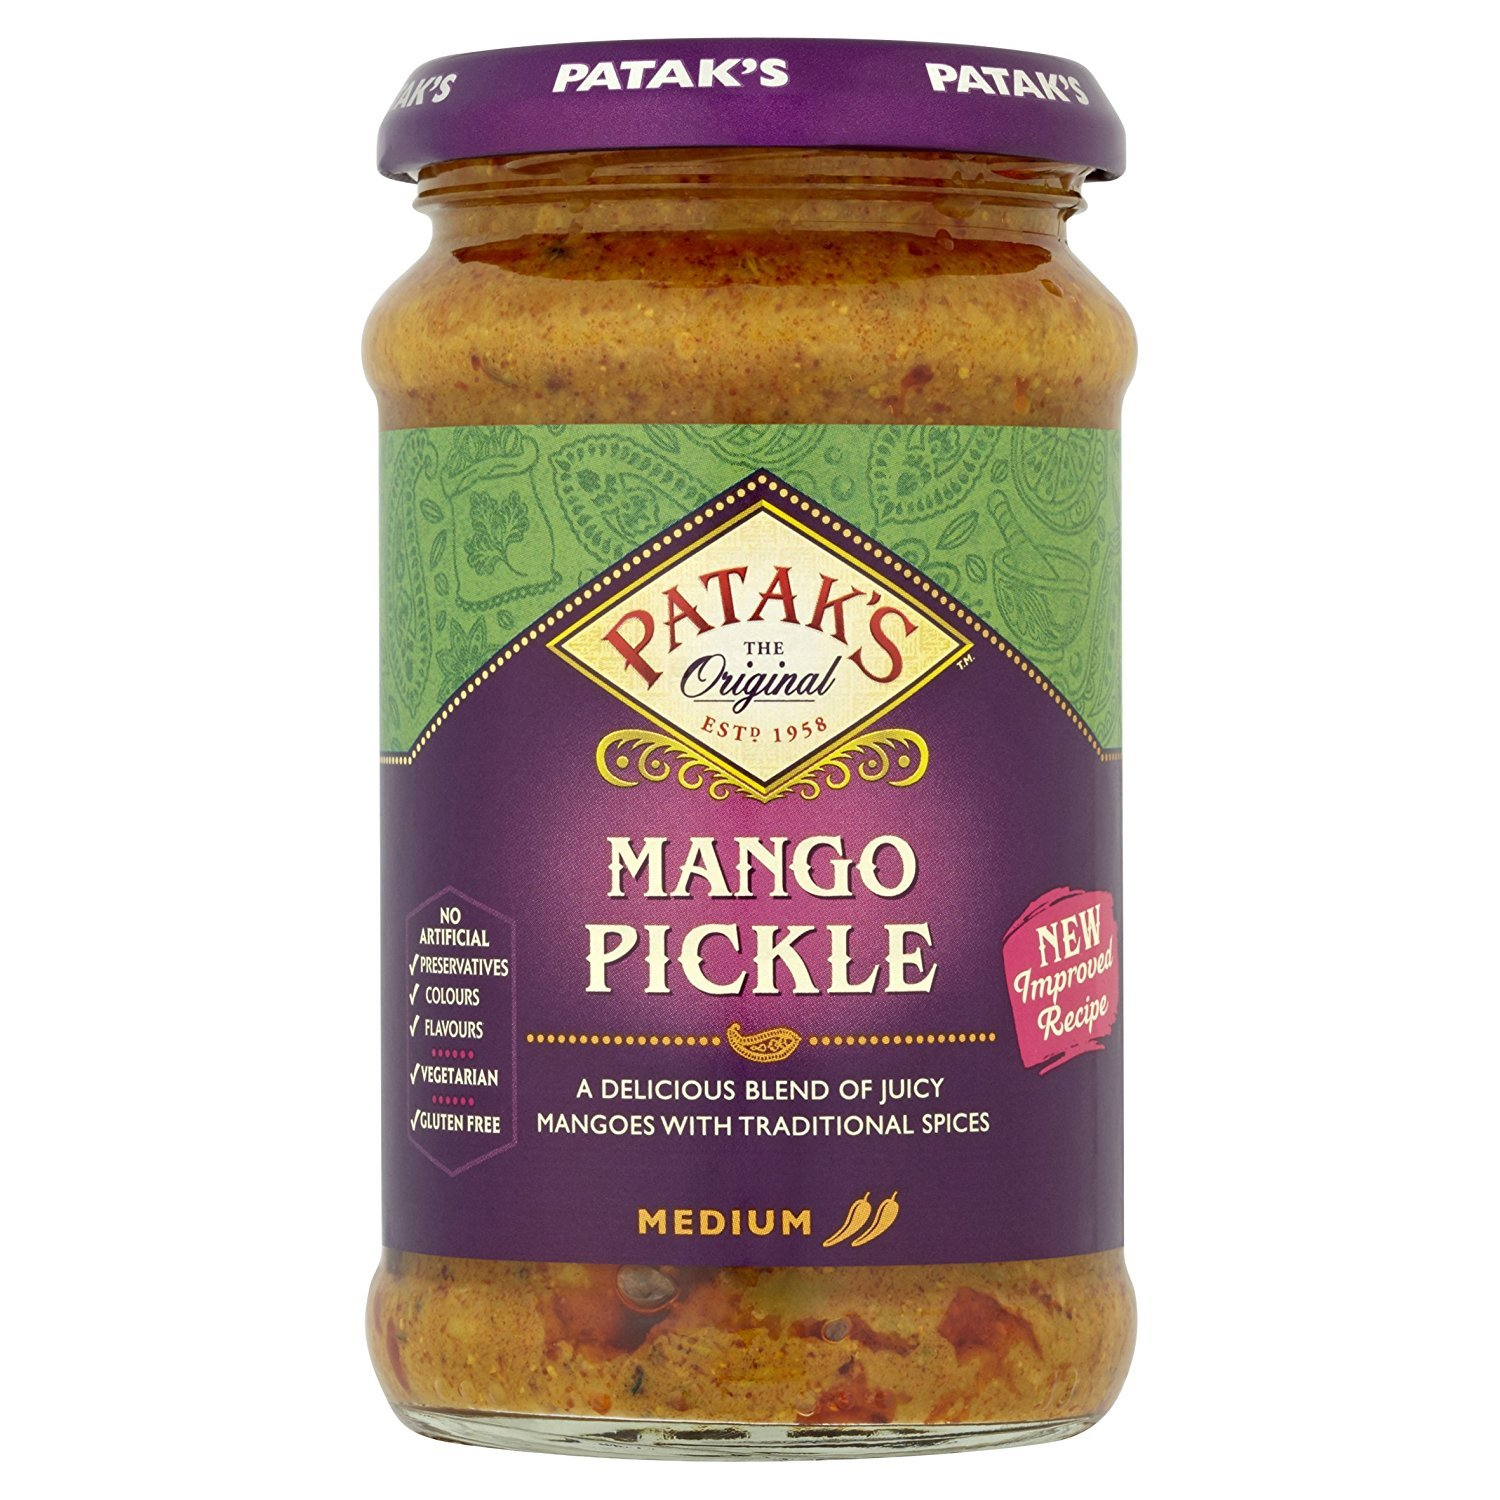 Patak's Mango Pickle - 283g (pack of 2)